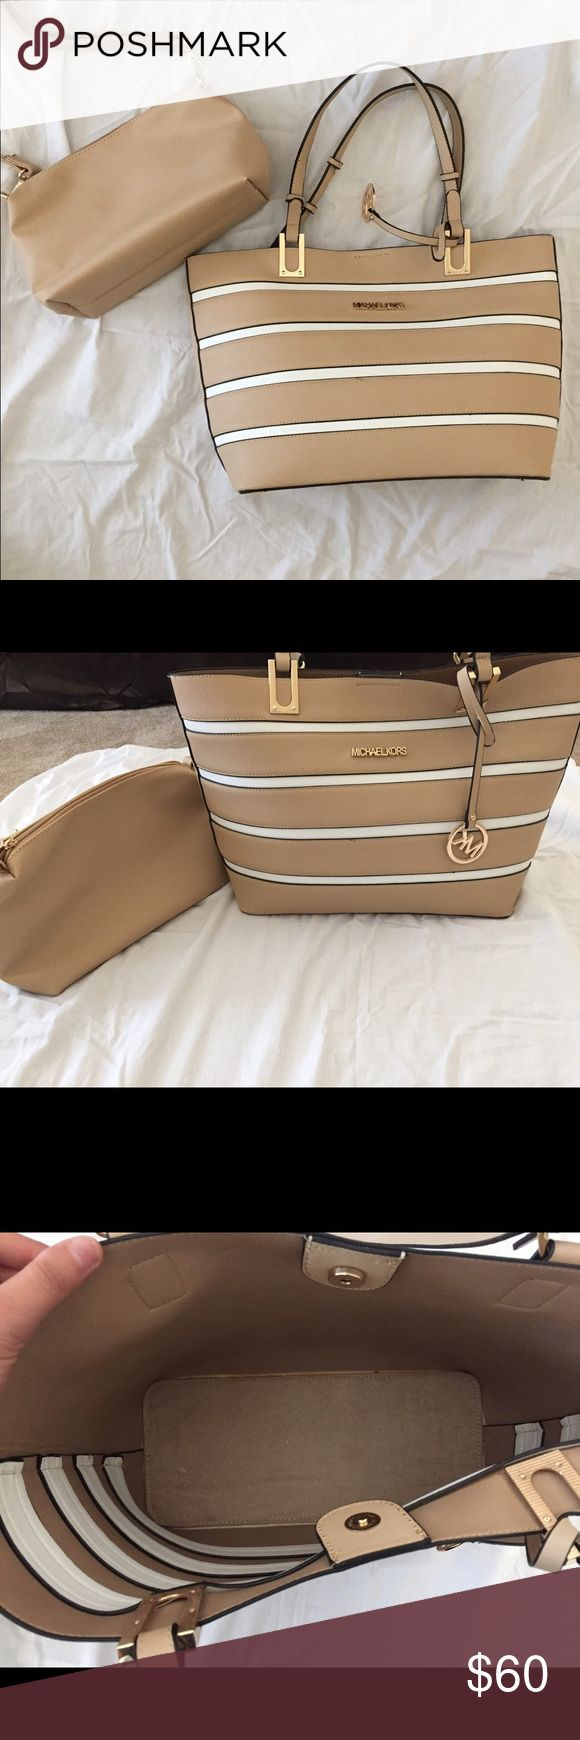 Michael Kors purse Super cute, excellent condition micheal kors purse/tote. Both purses are included. (Non authentic) no rips or tears. KORS Michael Kors Bags Totes